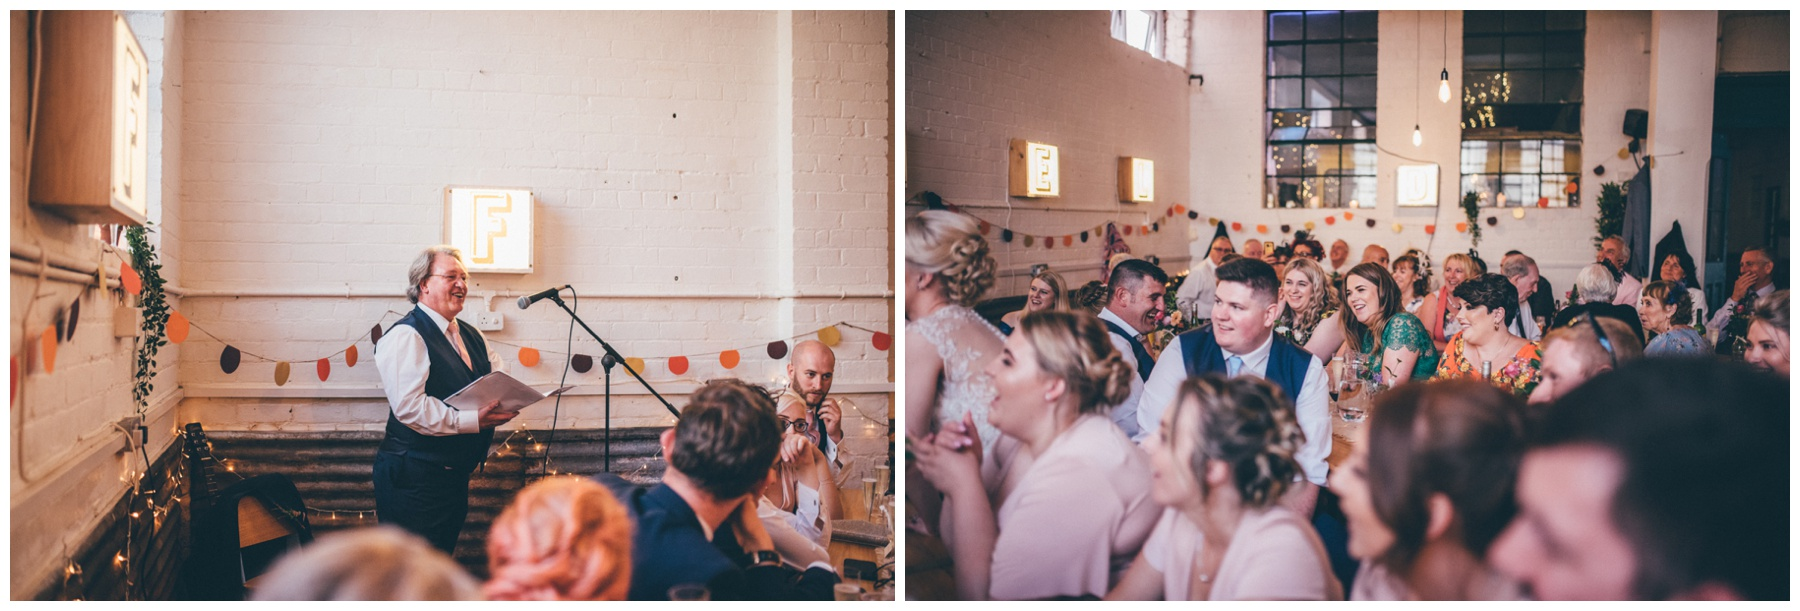 Wedding speeches at The Hide in Sheffield.